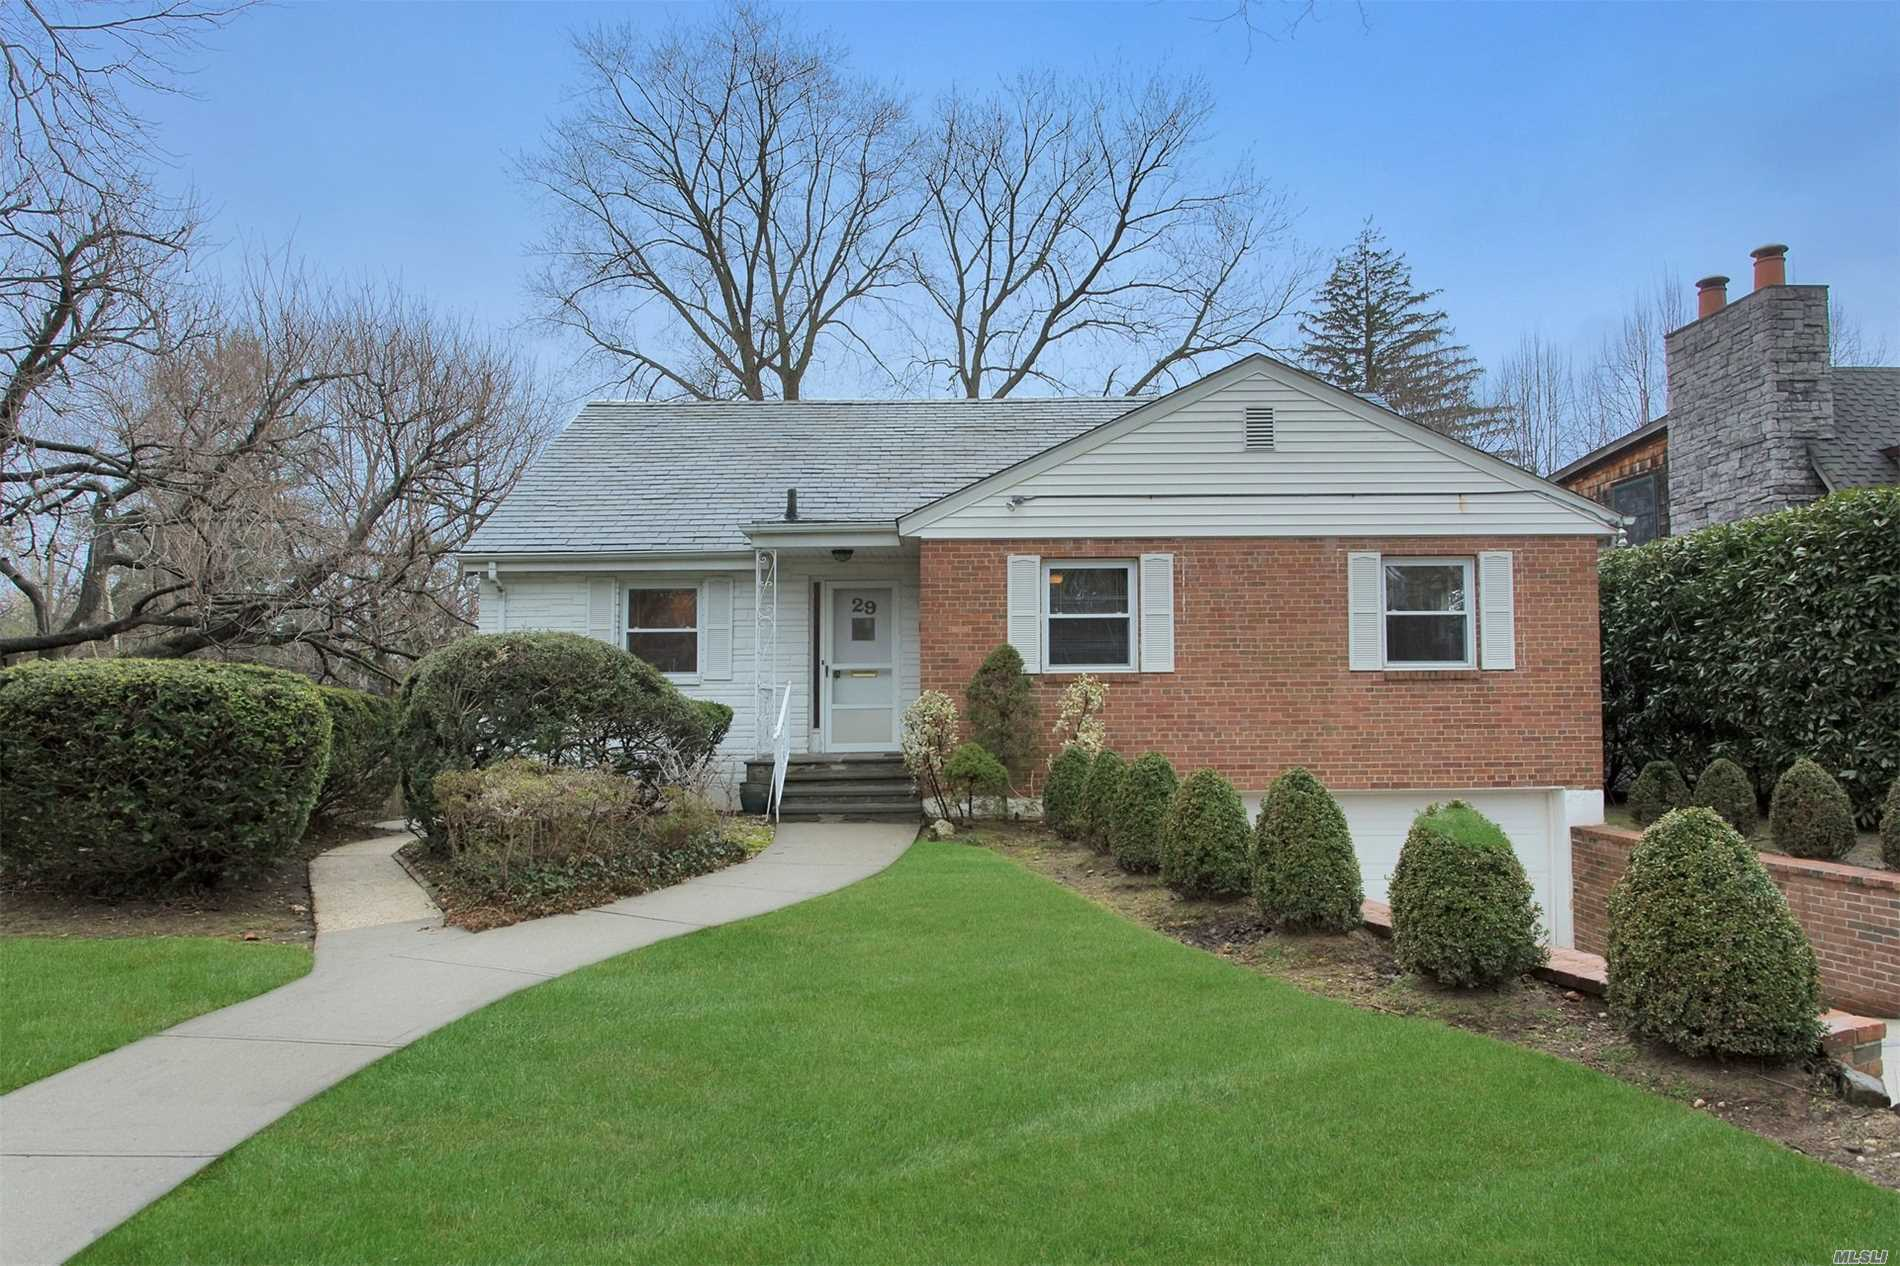 Brick, expanded ranch located in private village of Russel Gardens. 3 bedrooms and 2 baths & office on main level , with extra large bedroom on second level. Additional full finished lower level walk out to yard. Close to LIRR, buses. South schools. House is set high so that full sunset views can be seen from living room and dining room! Taxes have been grieved. Russell gardens private pool fee 1400 annually.